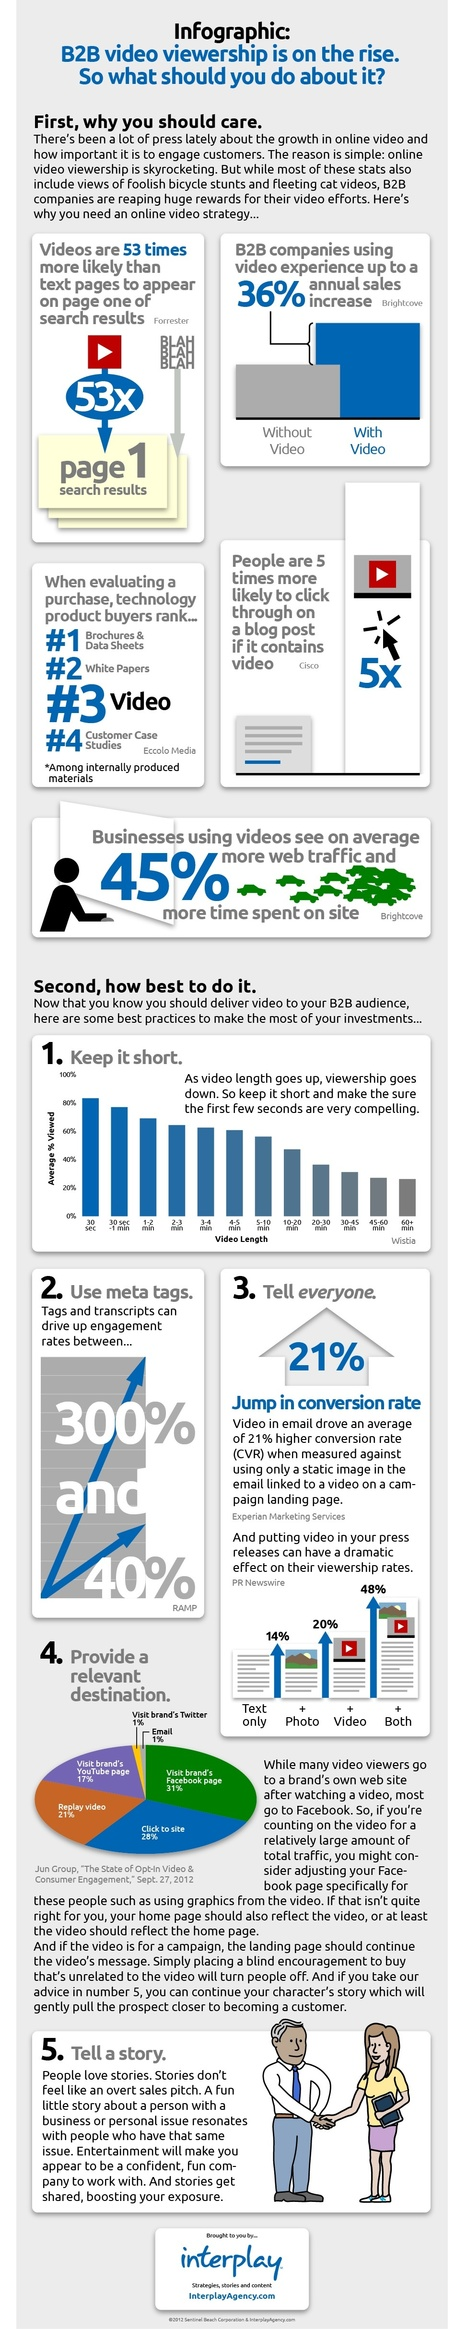 B2B Video Viewership is on the Rise. So What Should You Do About It? [Infographic] | Lernvideo | Scoop.it